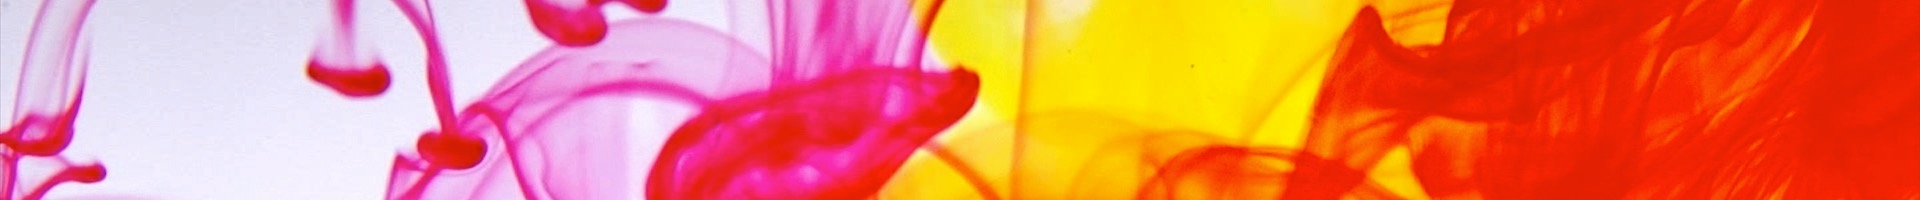 Header TicTac Stampa 7 | tictac.it